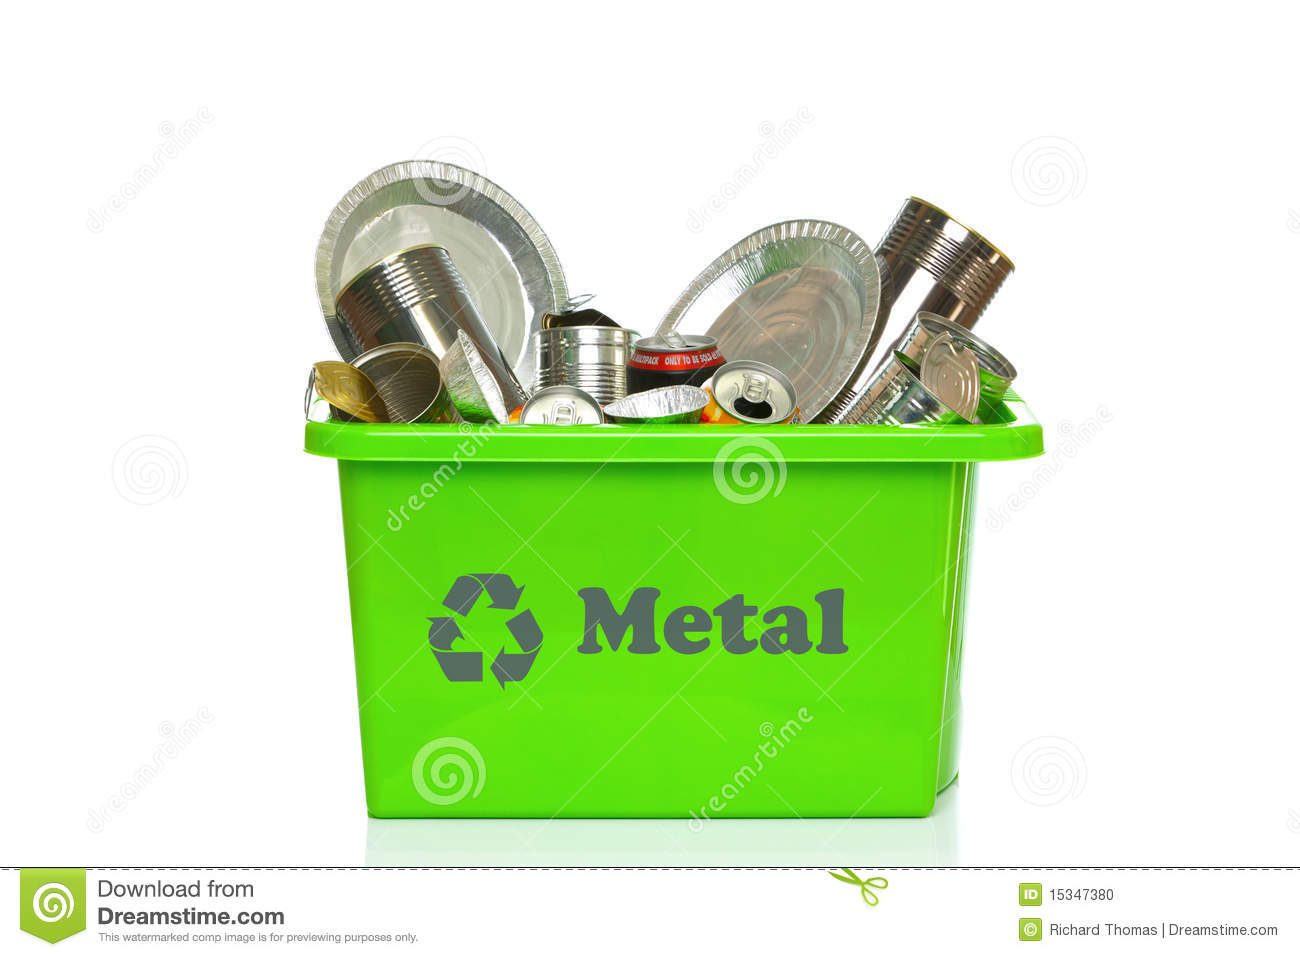 Saf Sku S 2983 likewise Scrap Metal likewise Recycling Of Aluminum Cans additionally Ls Truck Intake Shave Plastic Welding Easy How 529930 further Stock Photo Green Metal Recycling Bin Isolated White Image15347380. on scrap aluminum